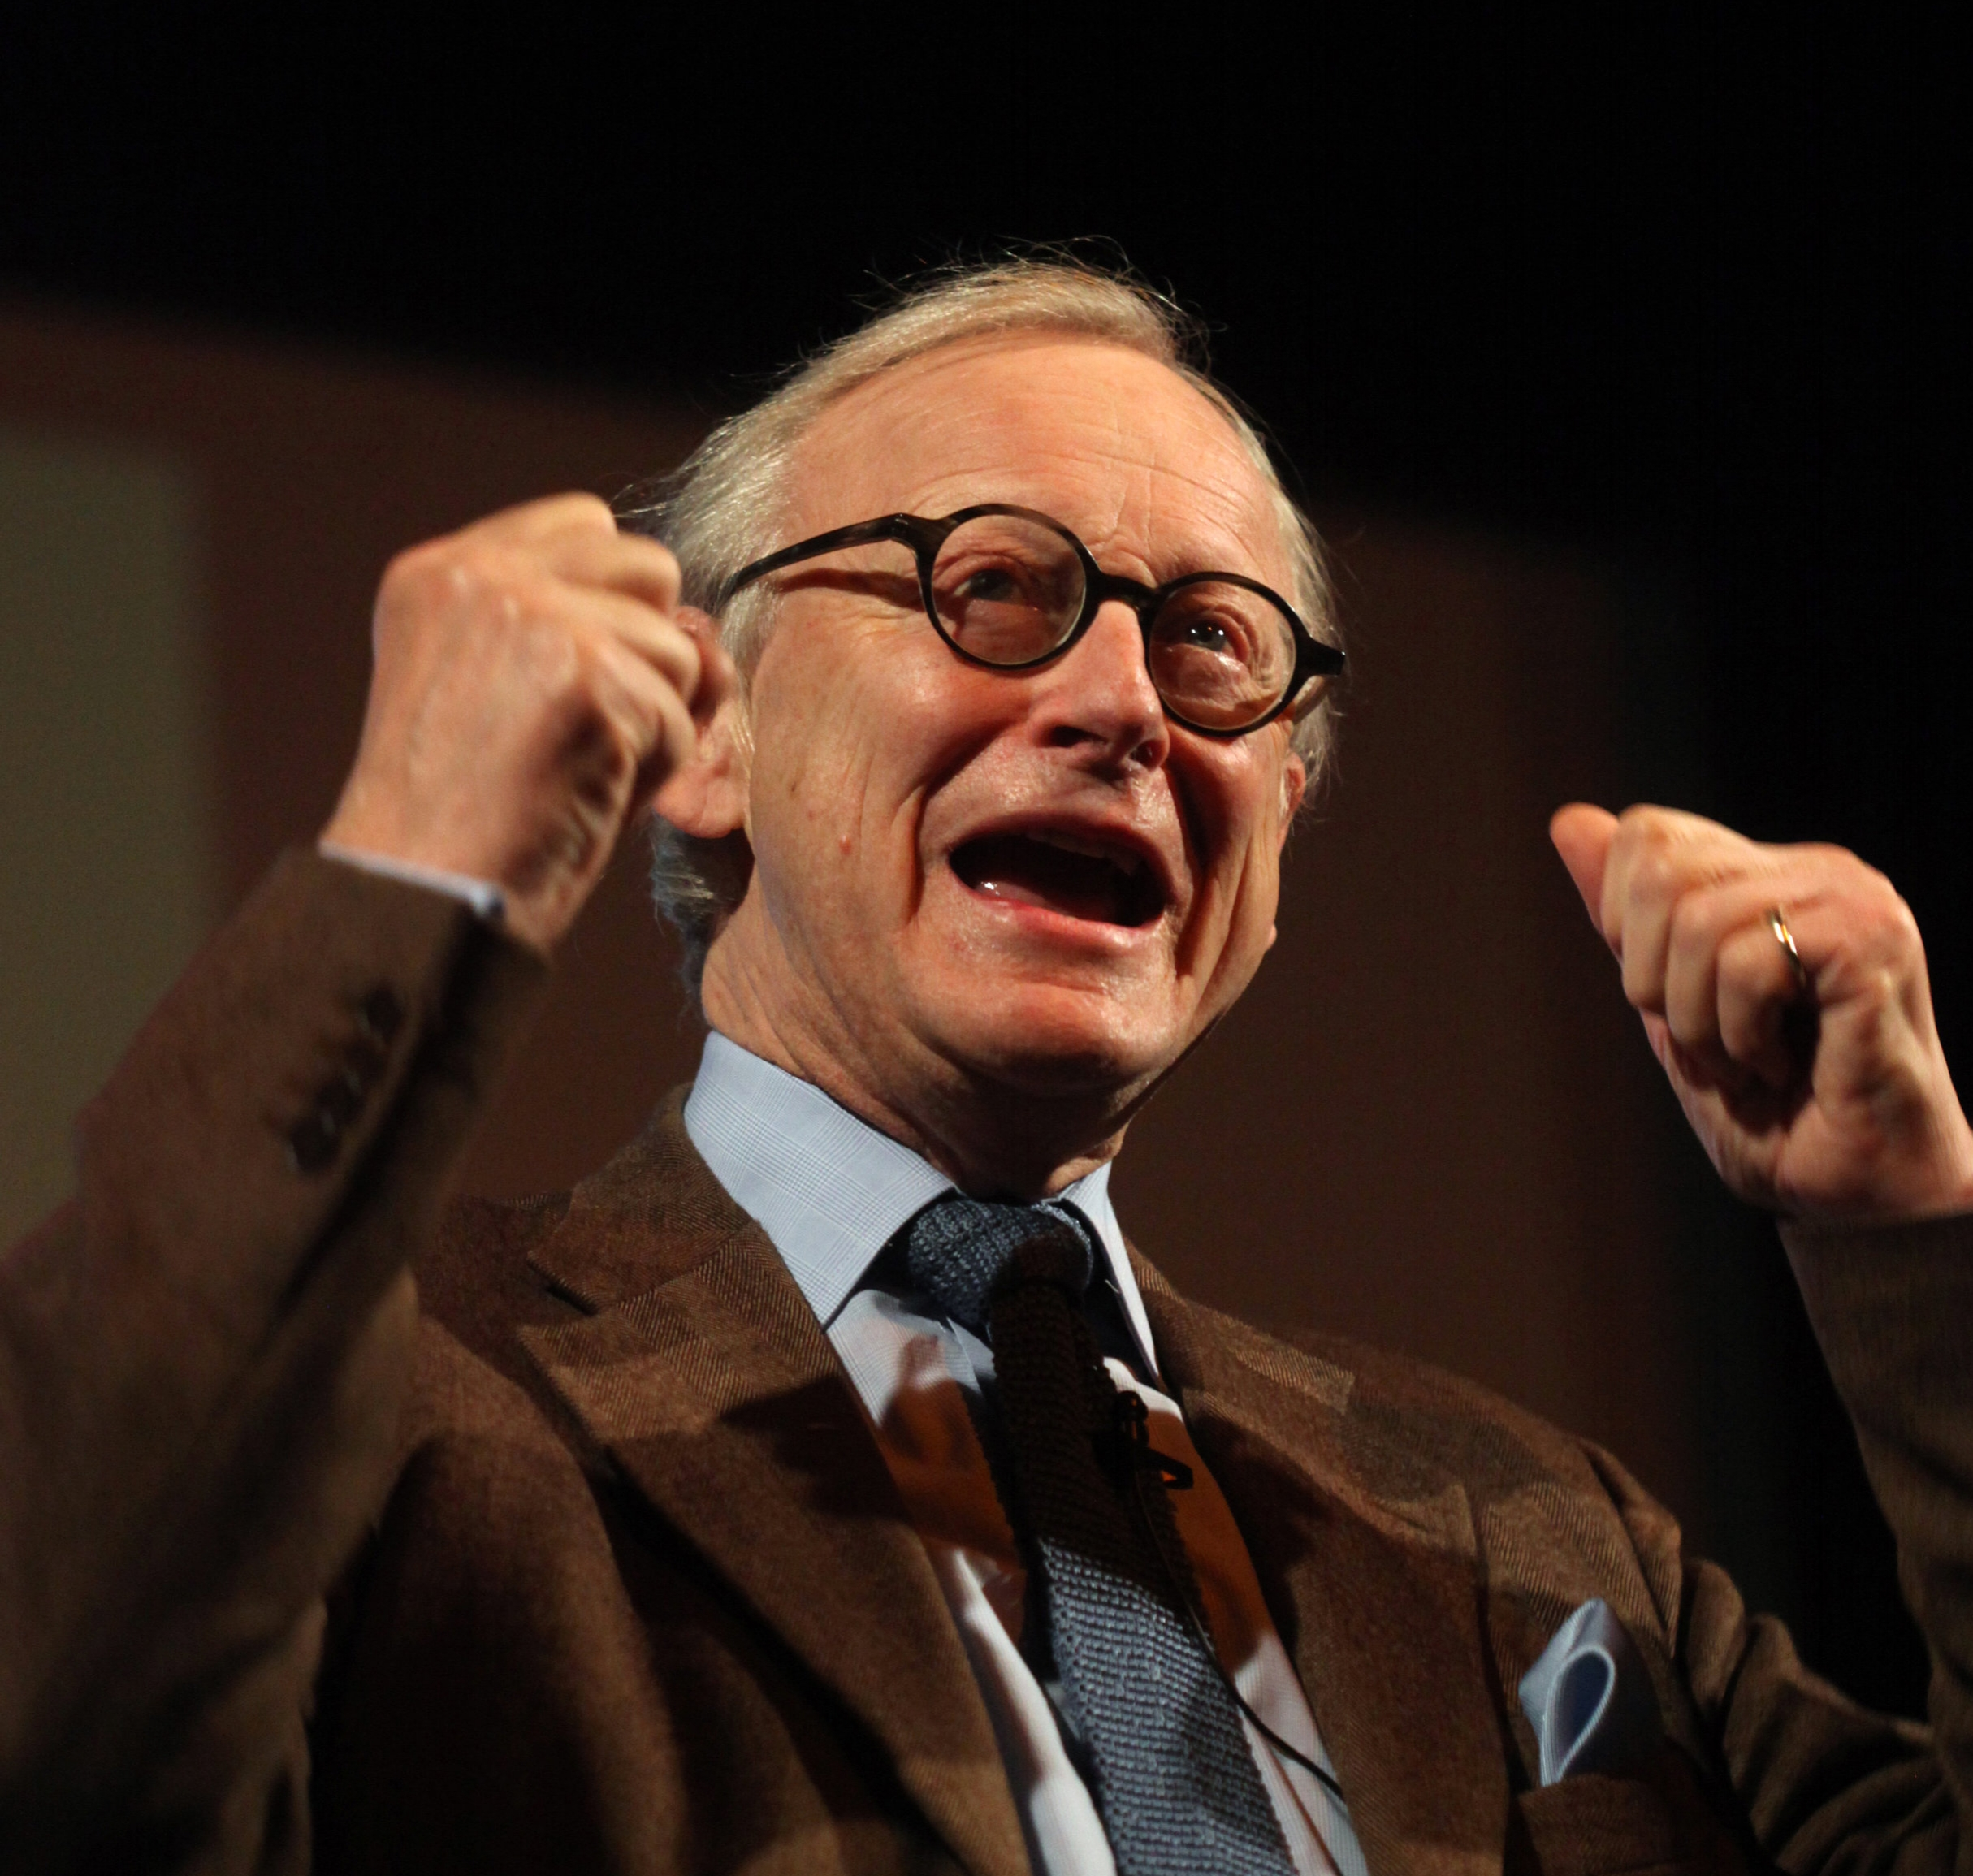 Lord Deben (Photo: Eamonn McCabe)